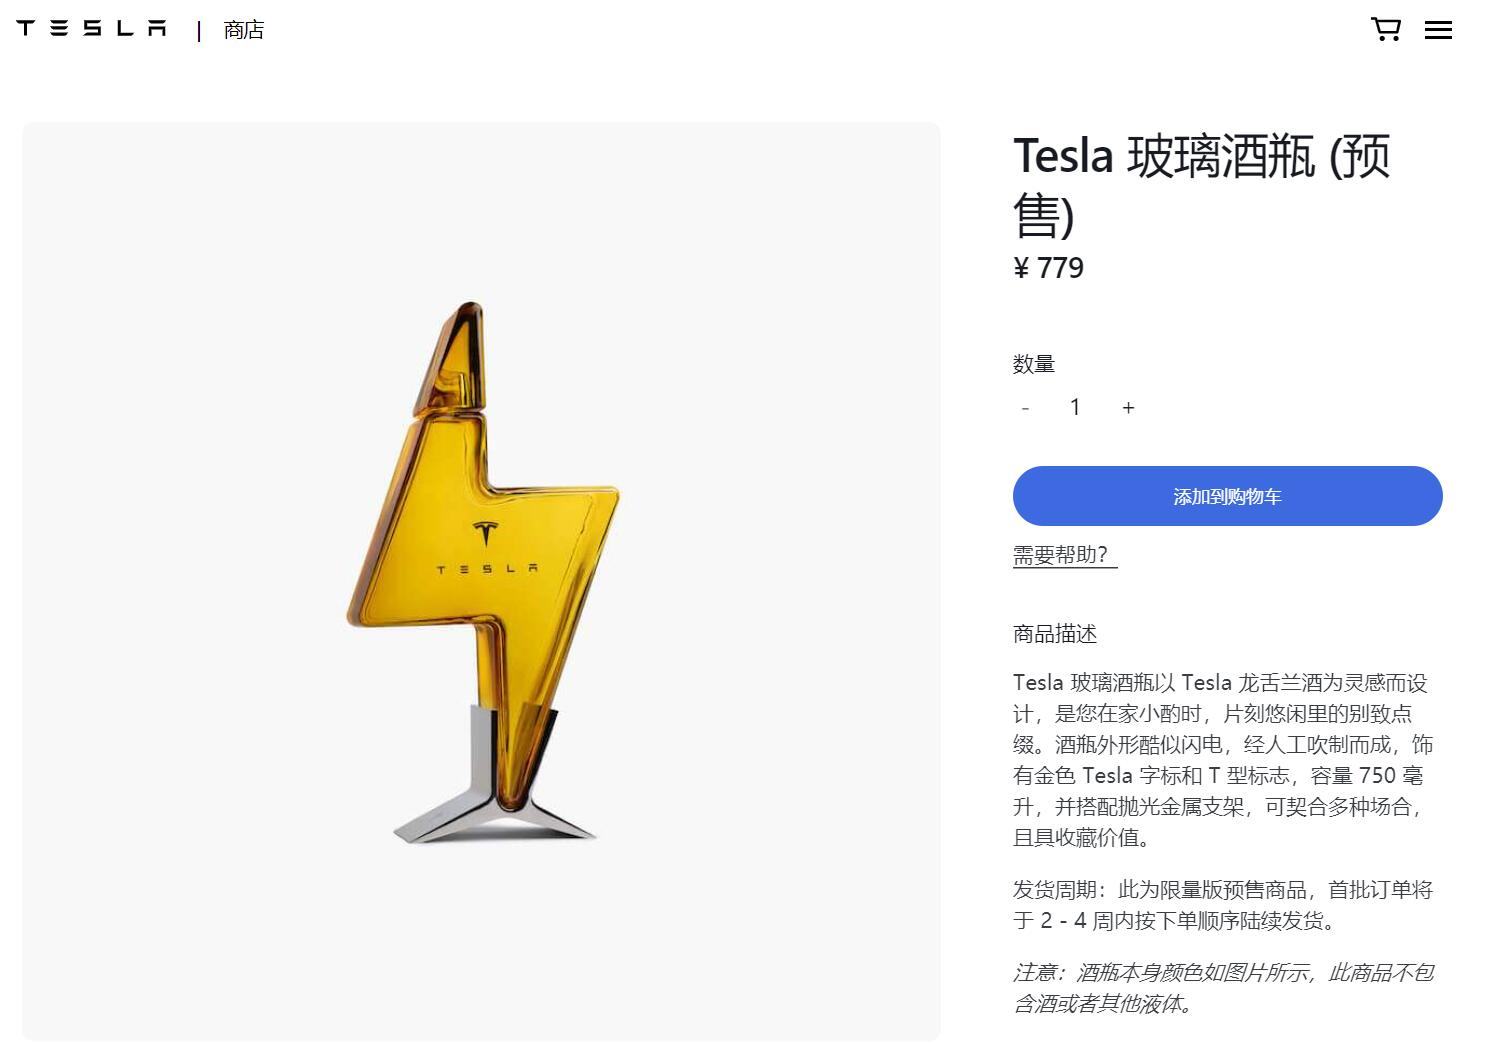 Tesla Tequila's empty bottles available for pre-order in China for about $119 each-CnEVPost